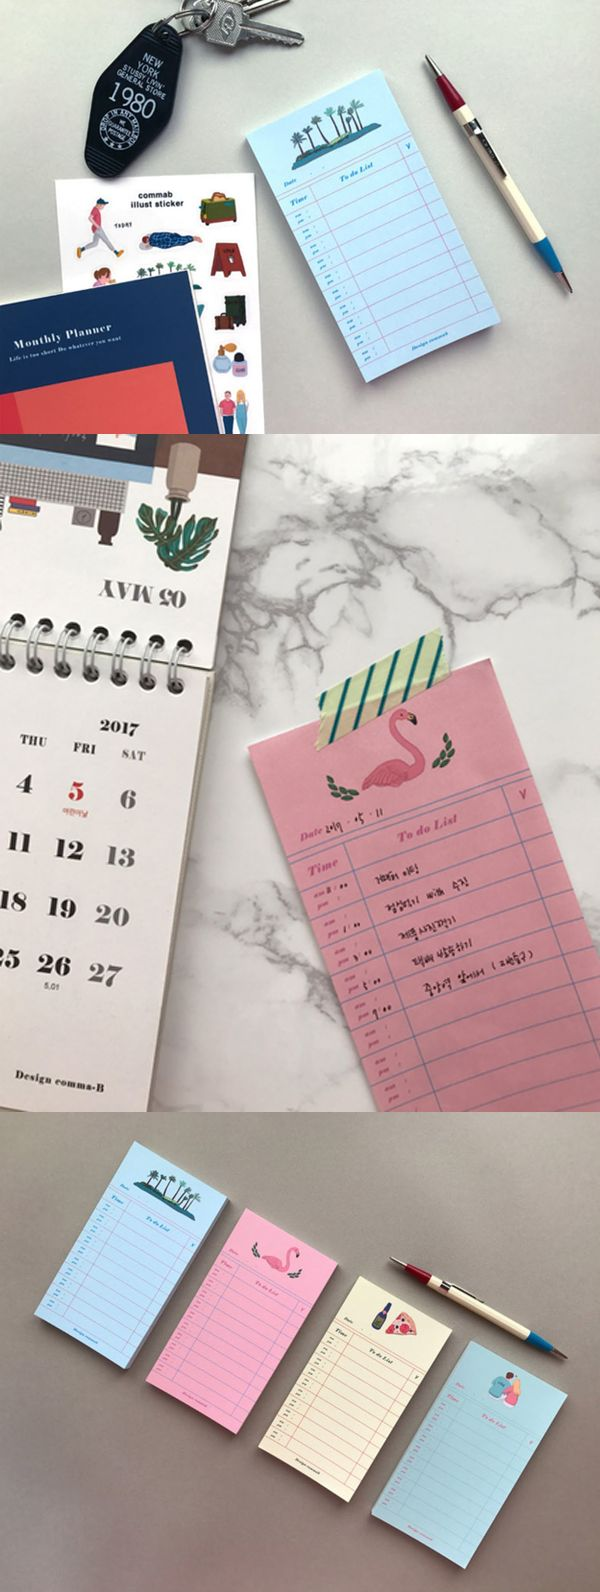 Manage things to do efficiently and never miss anything important with an assist from the Vintage Illustration To-do List Pad! It also has a space for time to make plans by the hours!